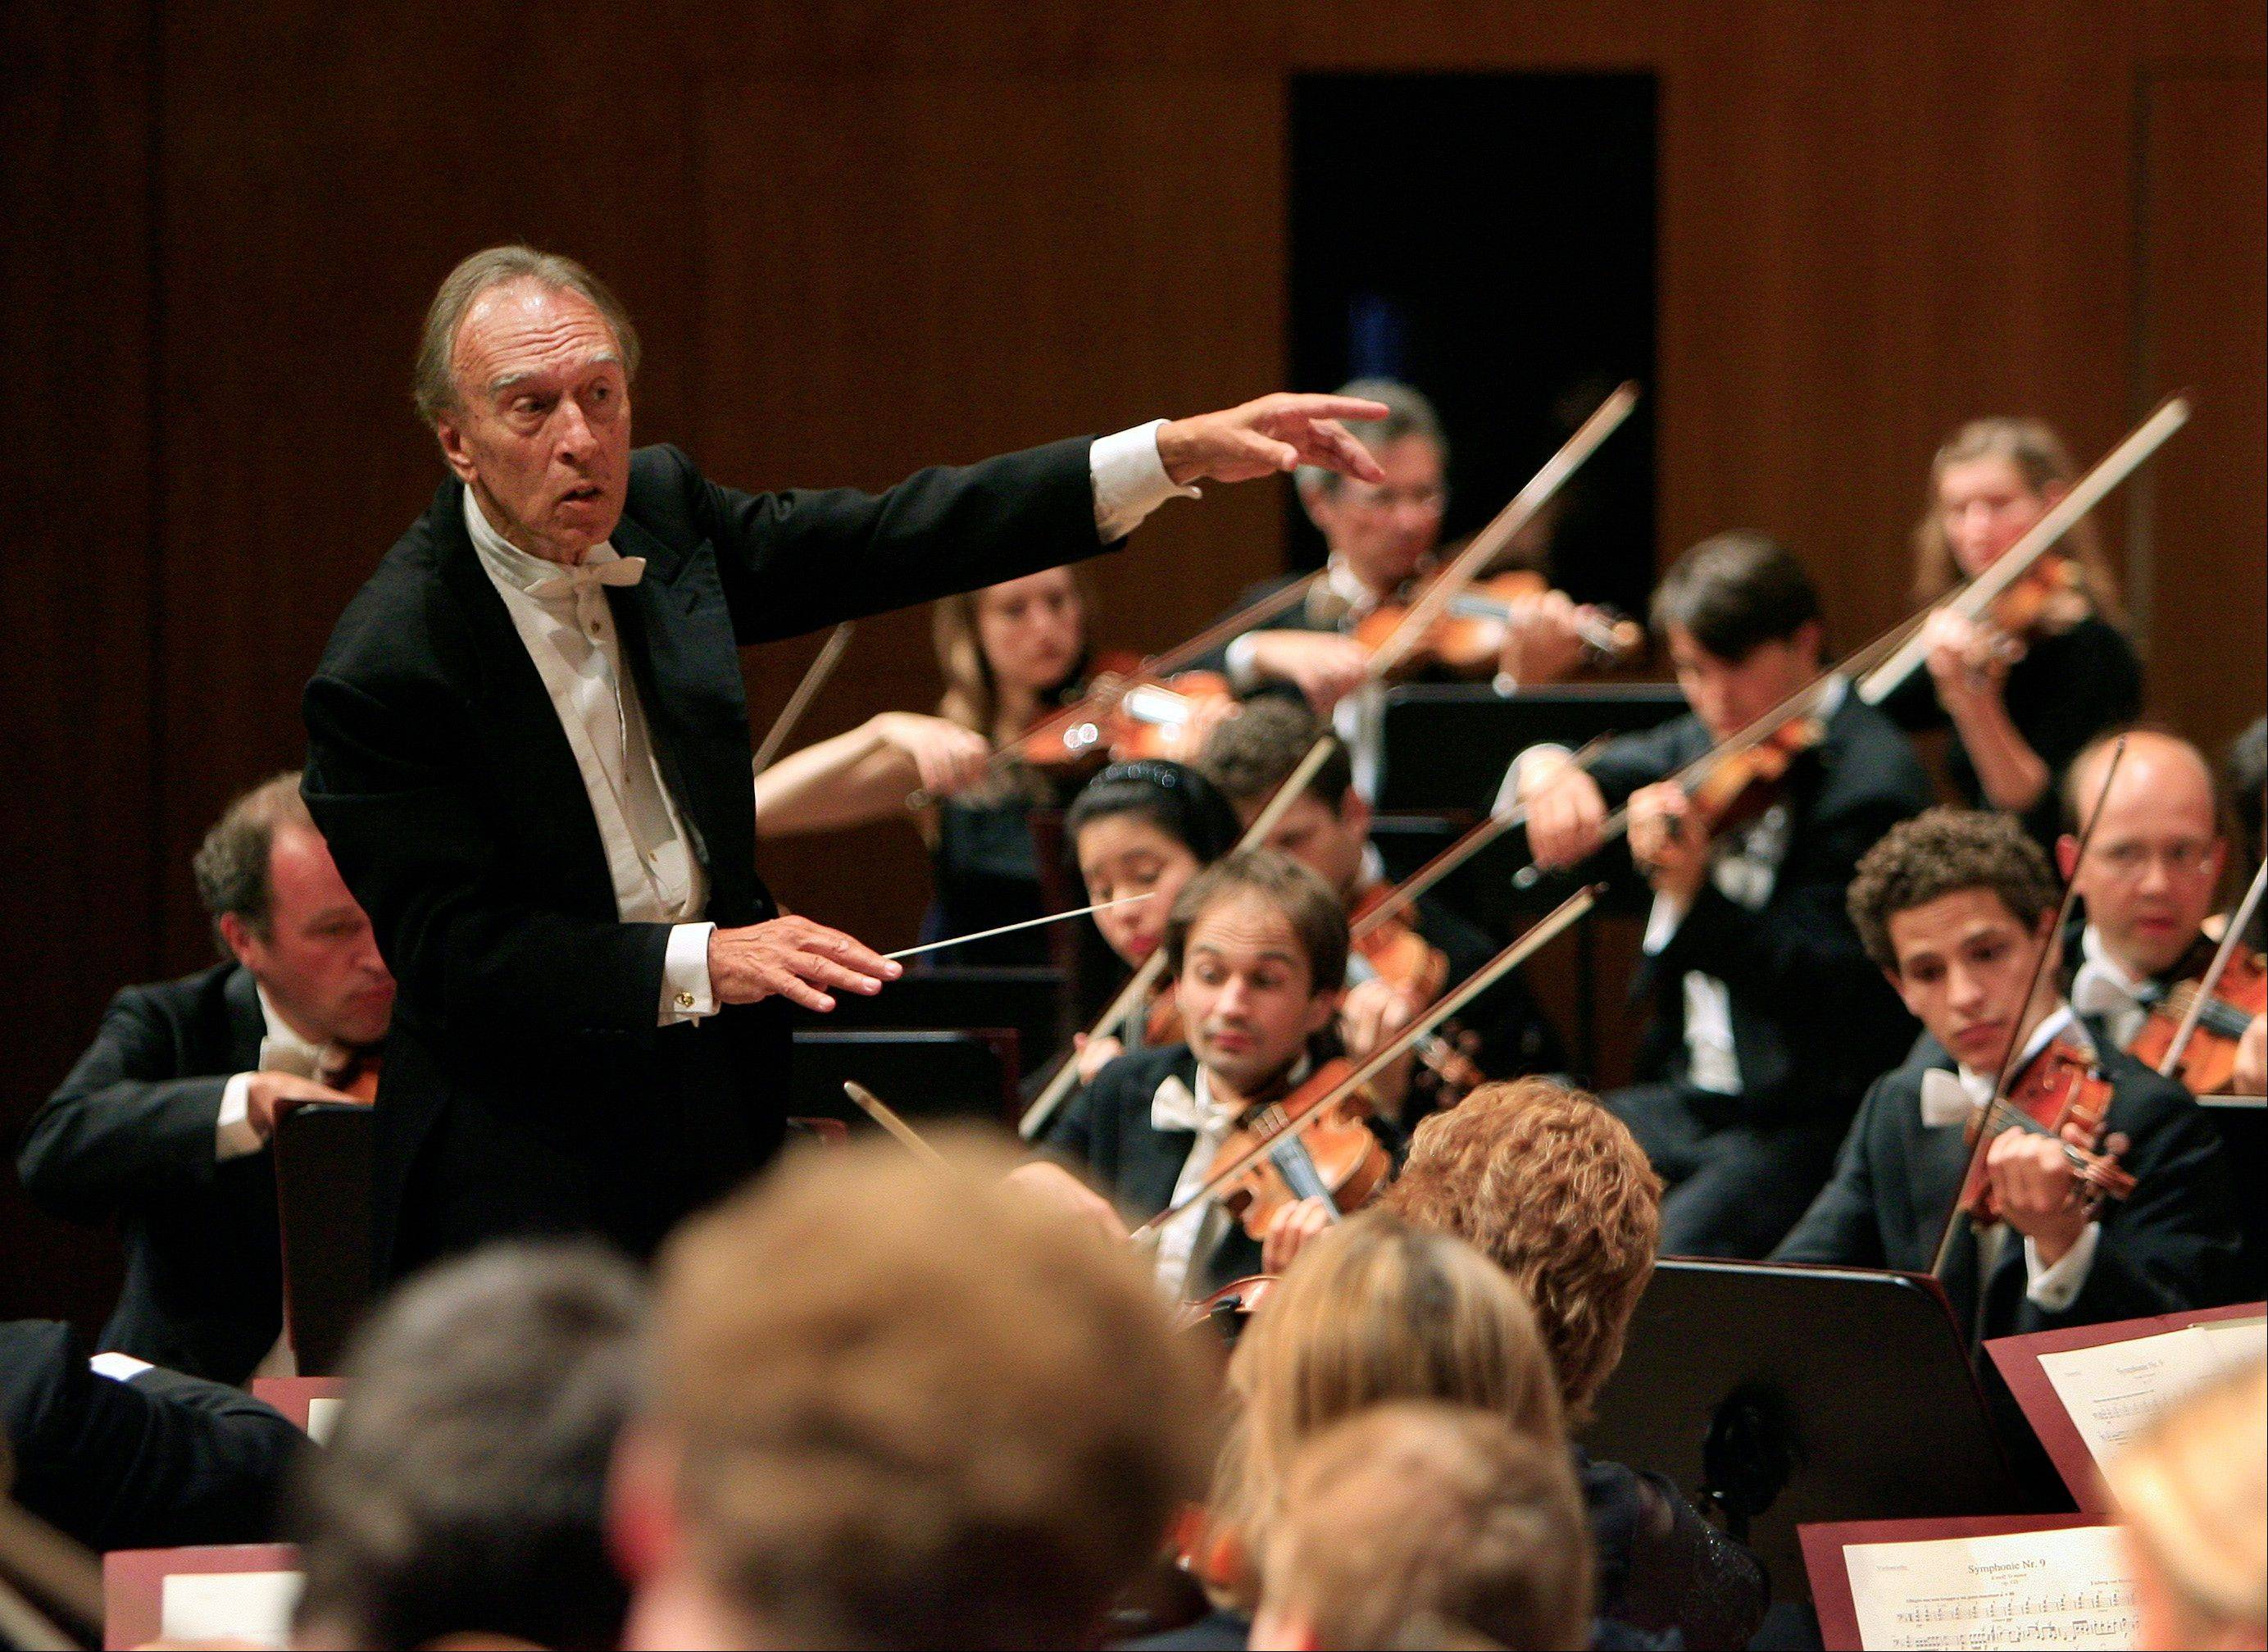 Claudio Abbado, left, conducts his orchestra during the opening concert of the Lucerne Festival in Lucerne, Switzerland. Among his many stints were as musical director of the Vienna State Opera, the Berlin Philharmonic and the London Symphony Orchestra and chief guest conductor of the Chicago Philharmonic.